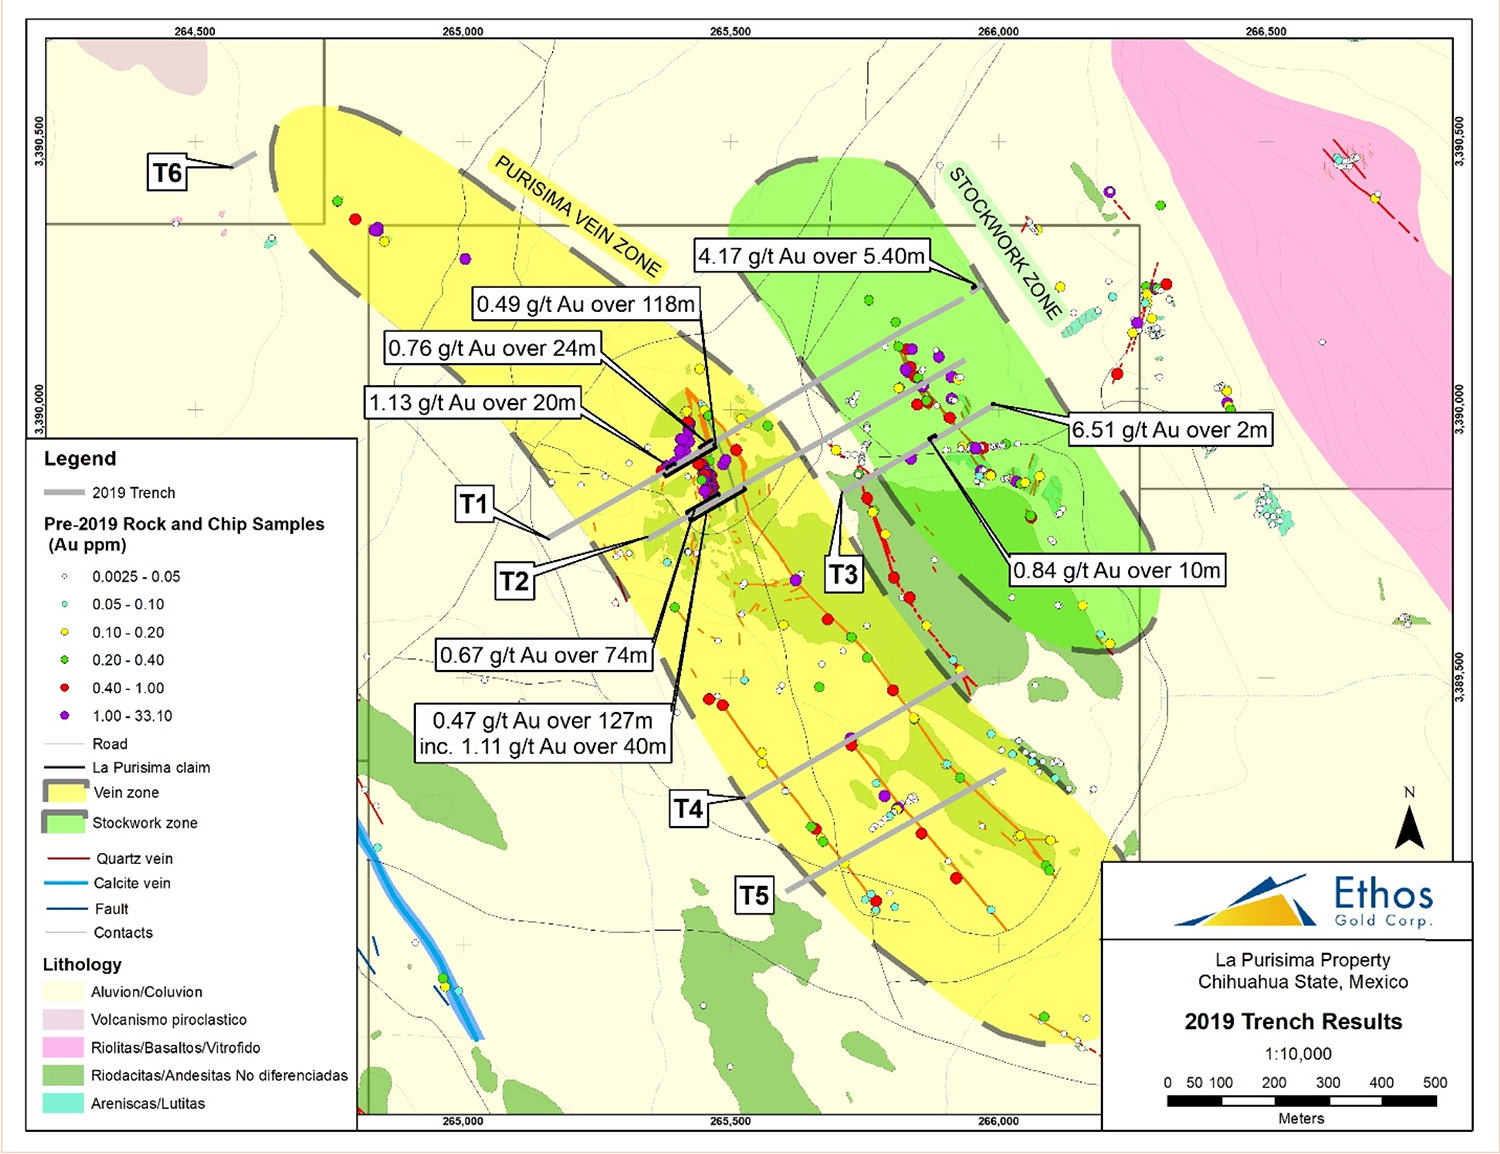 Ethos trenches 0.47 g/t Au over 127 m including 1.11 g/t Au over 40m at its La Purisima gold project, Chihuahua, Mexico